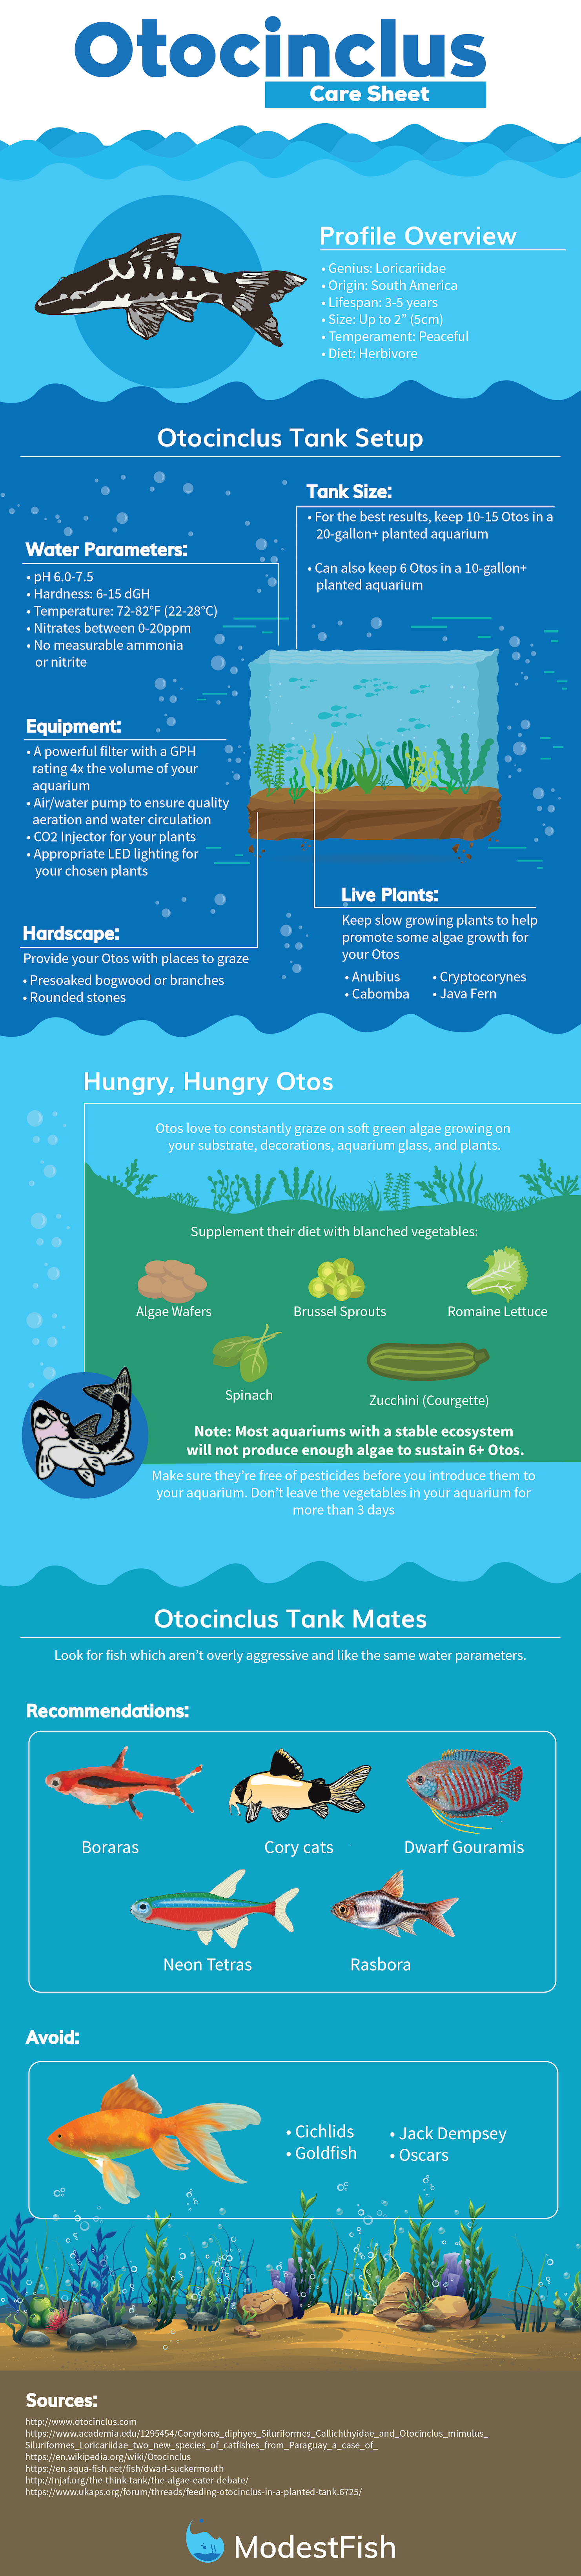 Check out our new infographic guide on how to care for Otocinclus